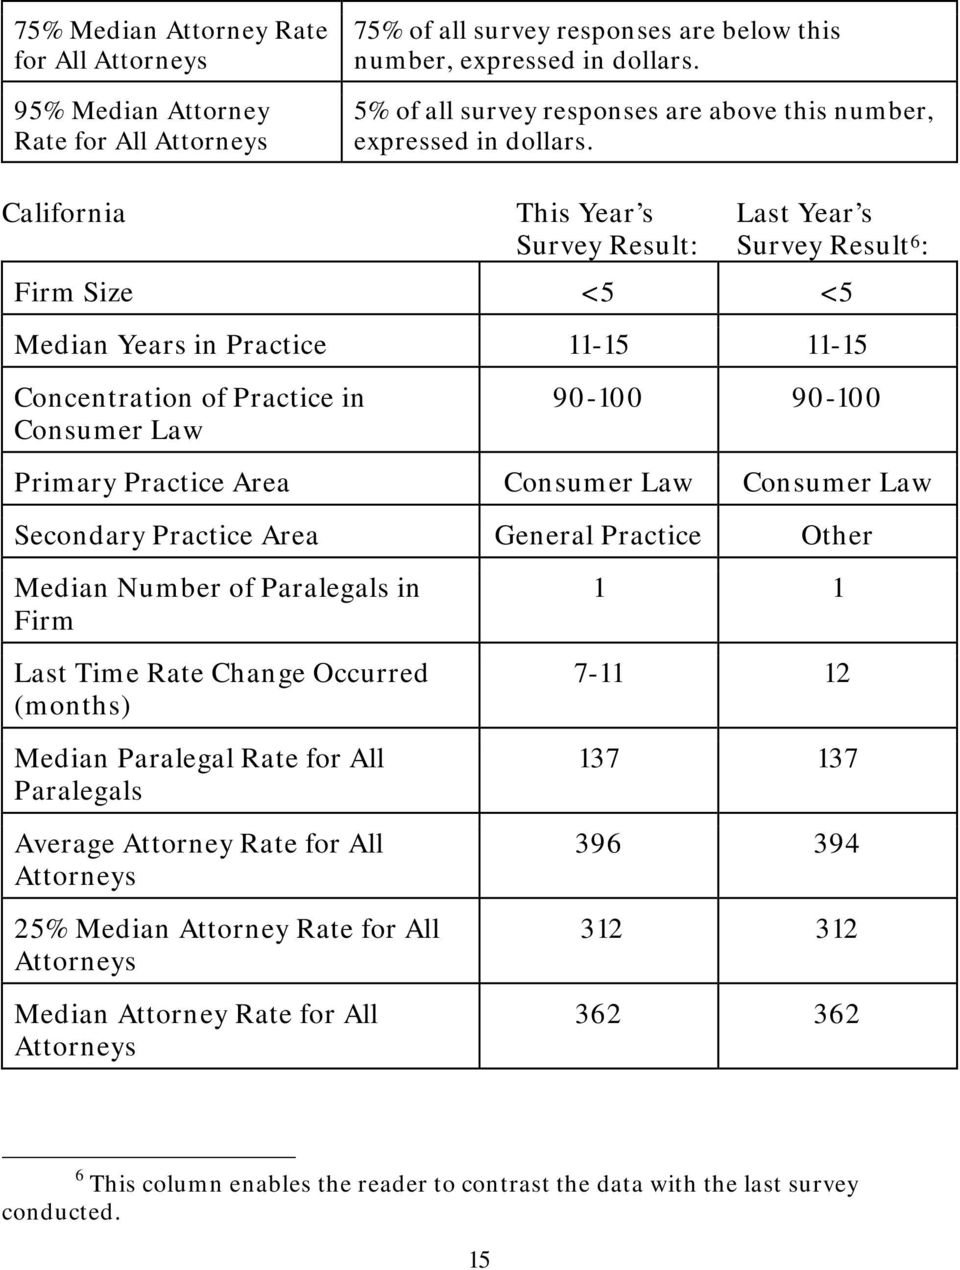 California This Year s Last Year s Survey Result: Survey Result 6 : Firm Size <5 <5 Median Years in Practice 11-15 11-15 Concentration of Practice in Consumer Law 90-100 90-100 Primary Practice Area